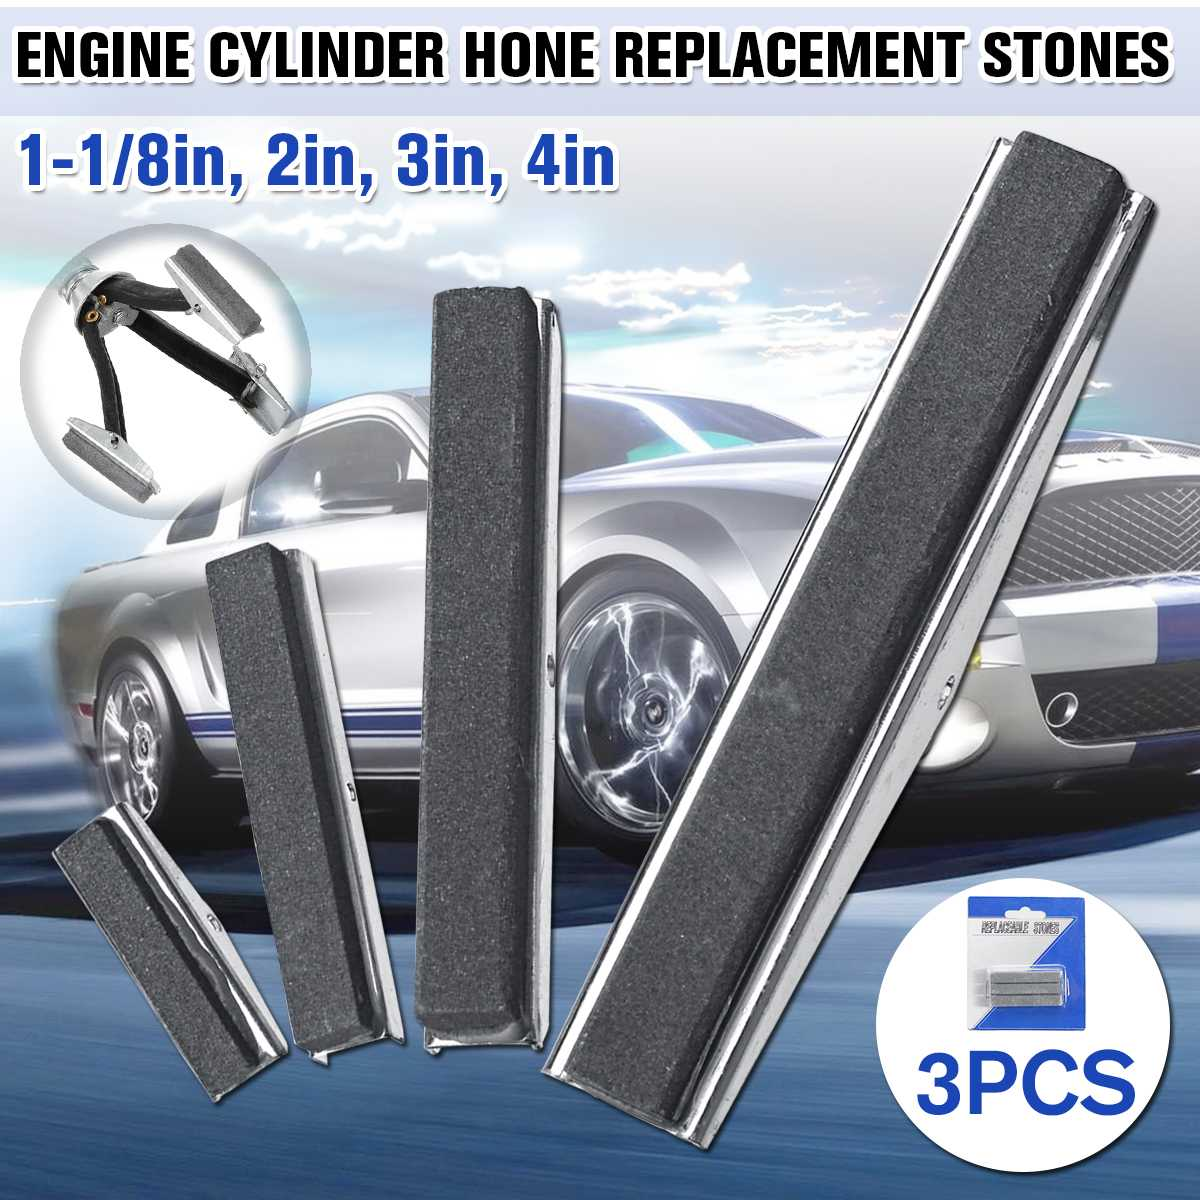 3pcs set Hone Replaceable Stones for Brake Piston Engine Cylinder Hone Tool Replacement Stone 1 125 2 3 4inch 4 Size